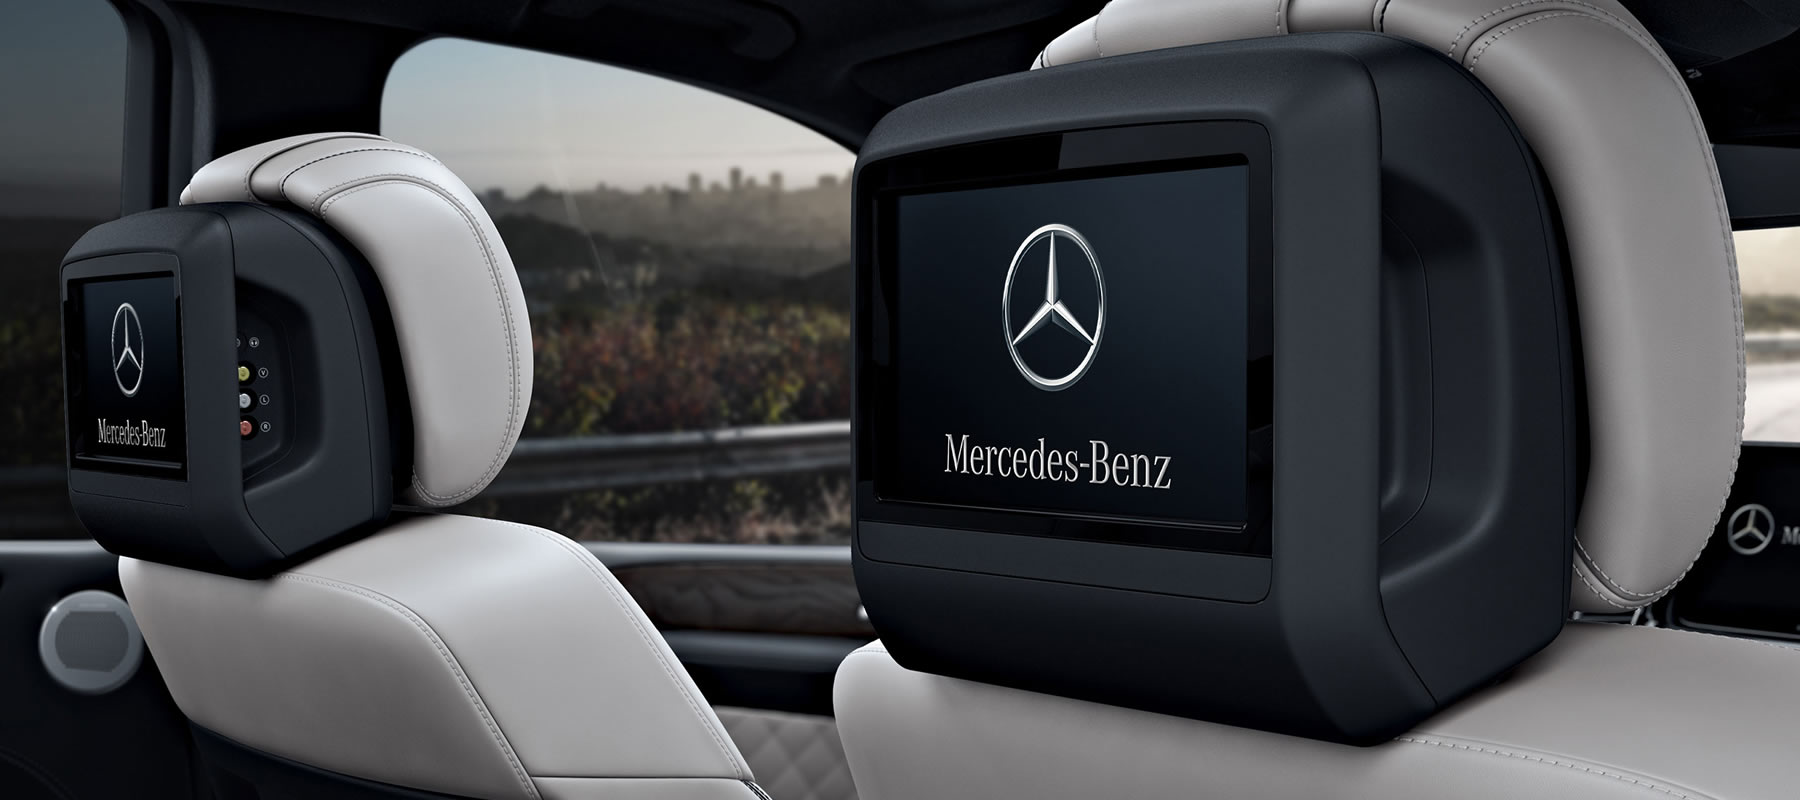 Genuine mercedes benz parts accessories at mercedes benz for Mercedes benz service department